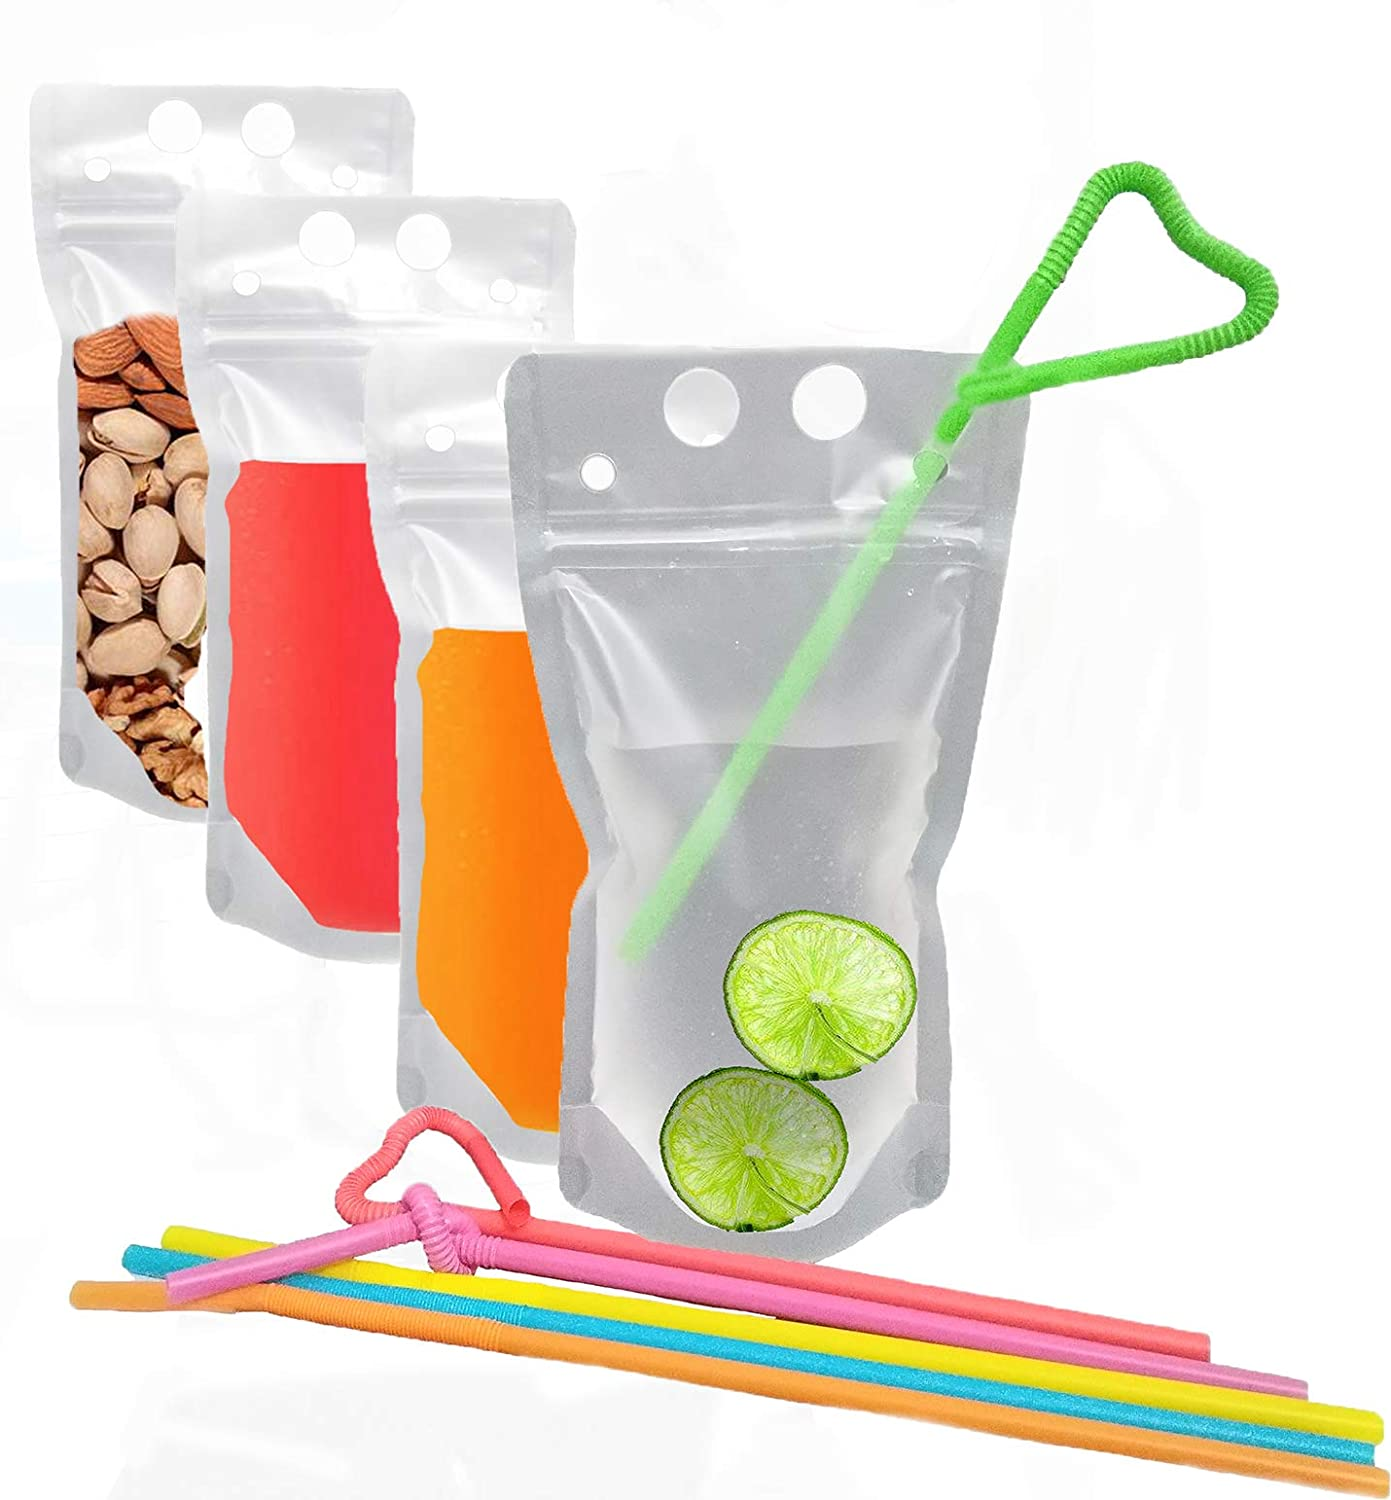 Drink Pouches Bag with Straws 20 Pack 17oz Plastic container Reclosable Zipper Hand-held Heavy Duty Ice Drinking Juice Pouches Bags